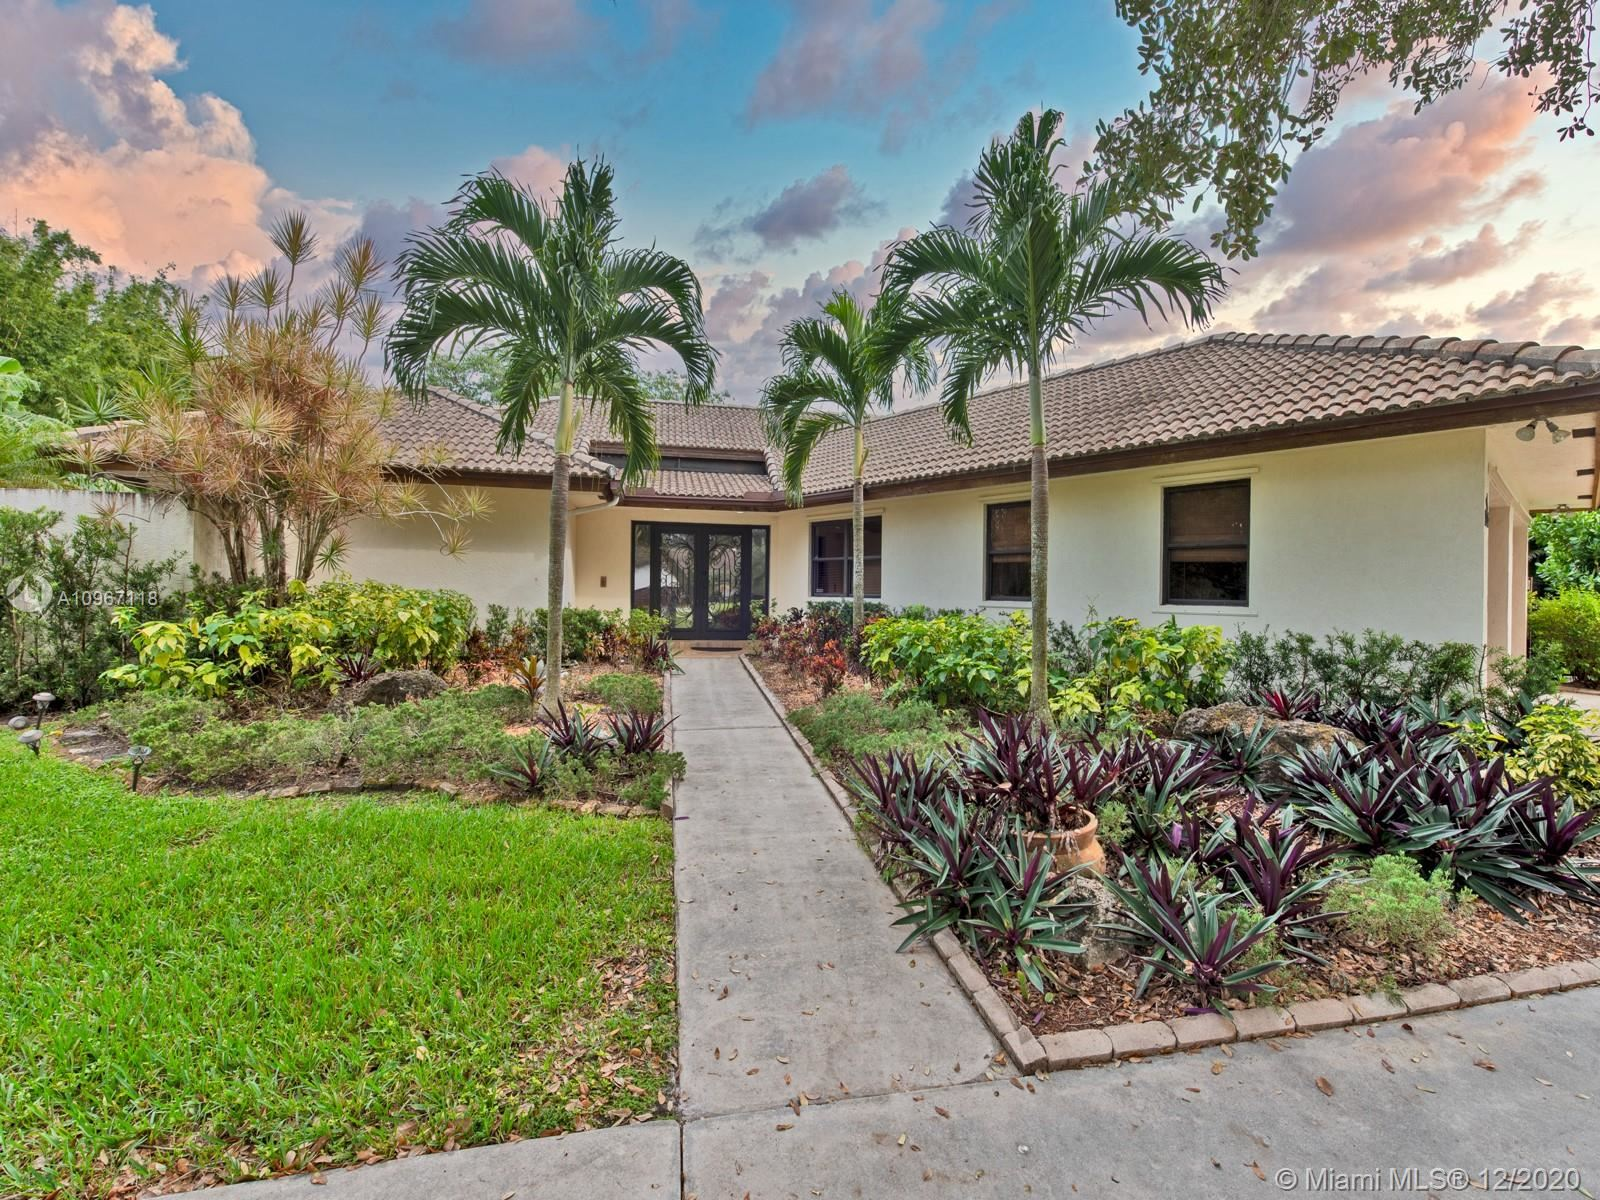 4980 SW 195th Ter, SouthWest Ranches, FL 33332 - #: A10967118